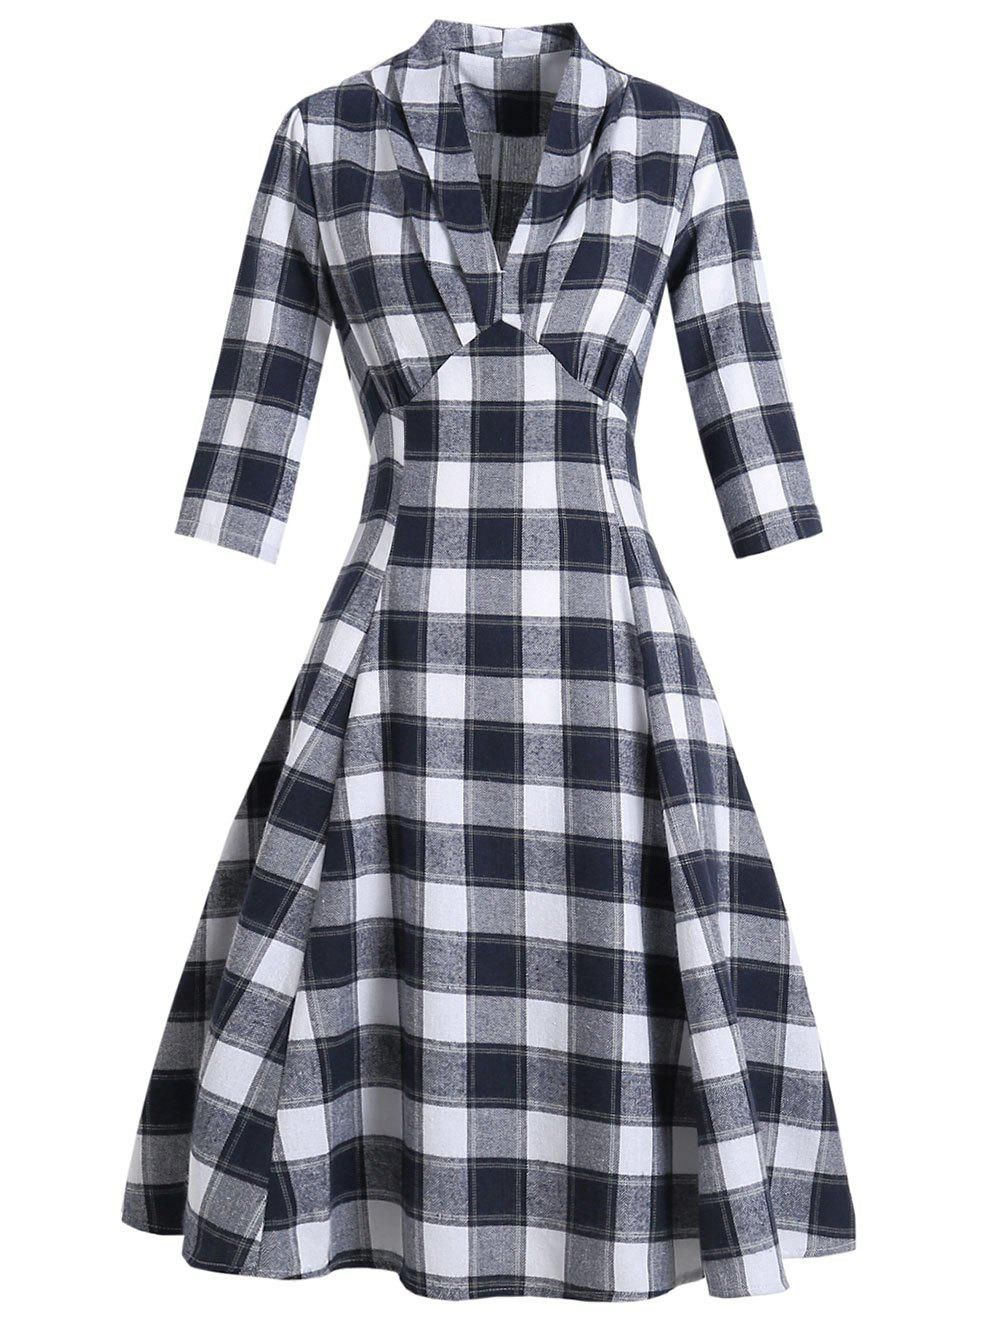 Glen Check Pleated V Neck Dress - DEEP BLUE XL